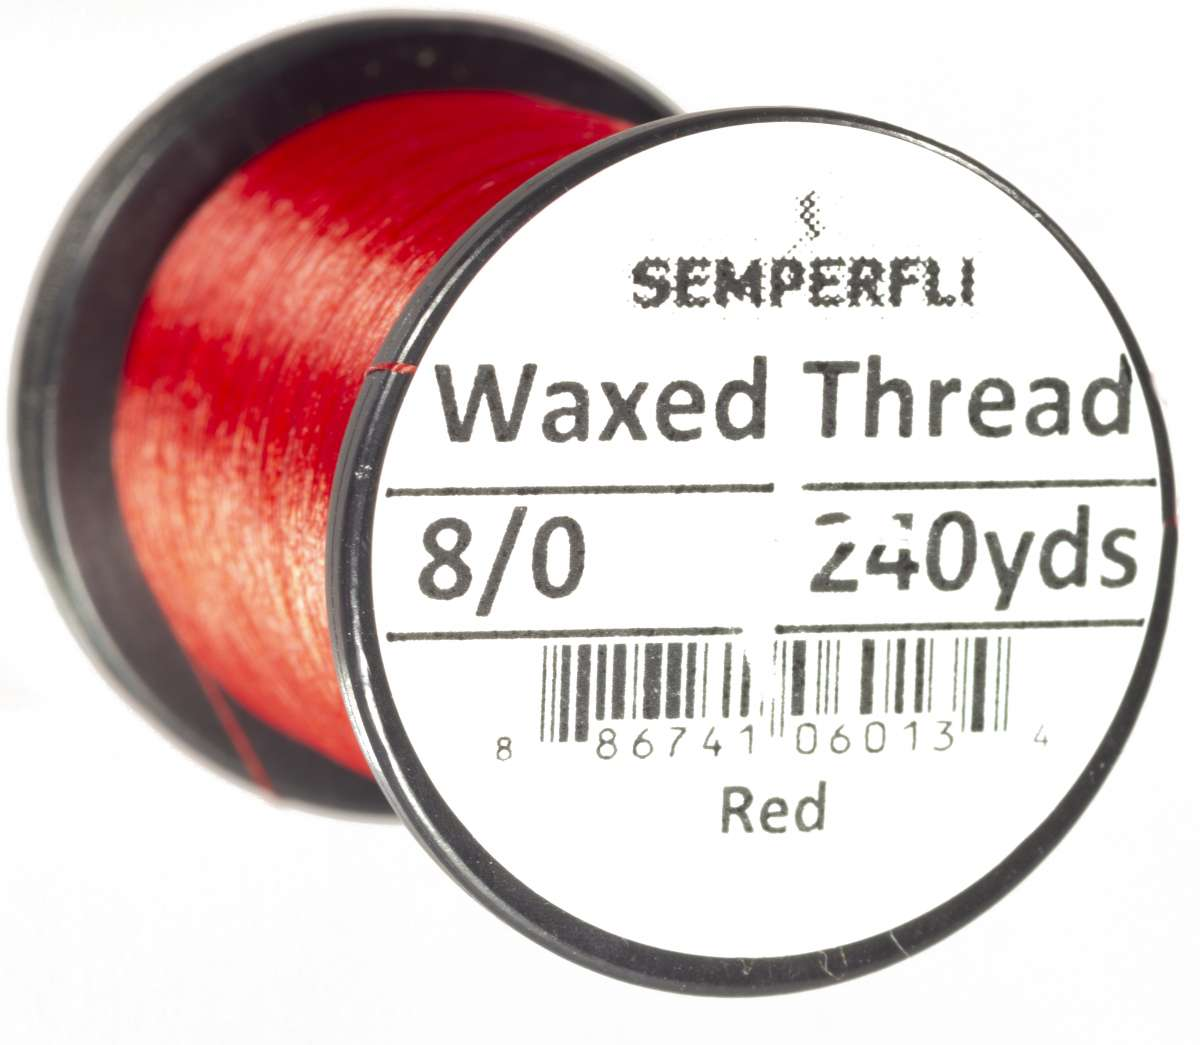 8/0 Classic Waxed Thread Medium Red Sem-0400-1635